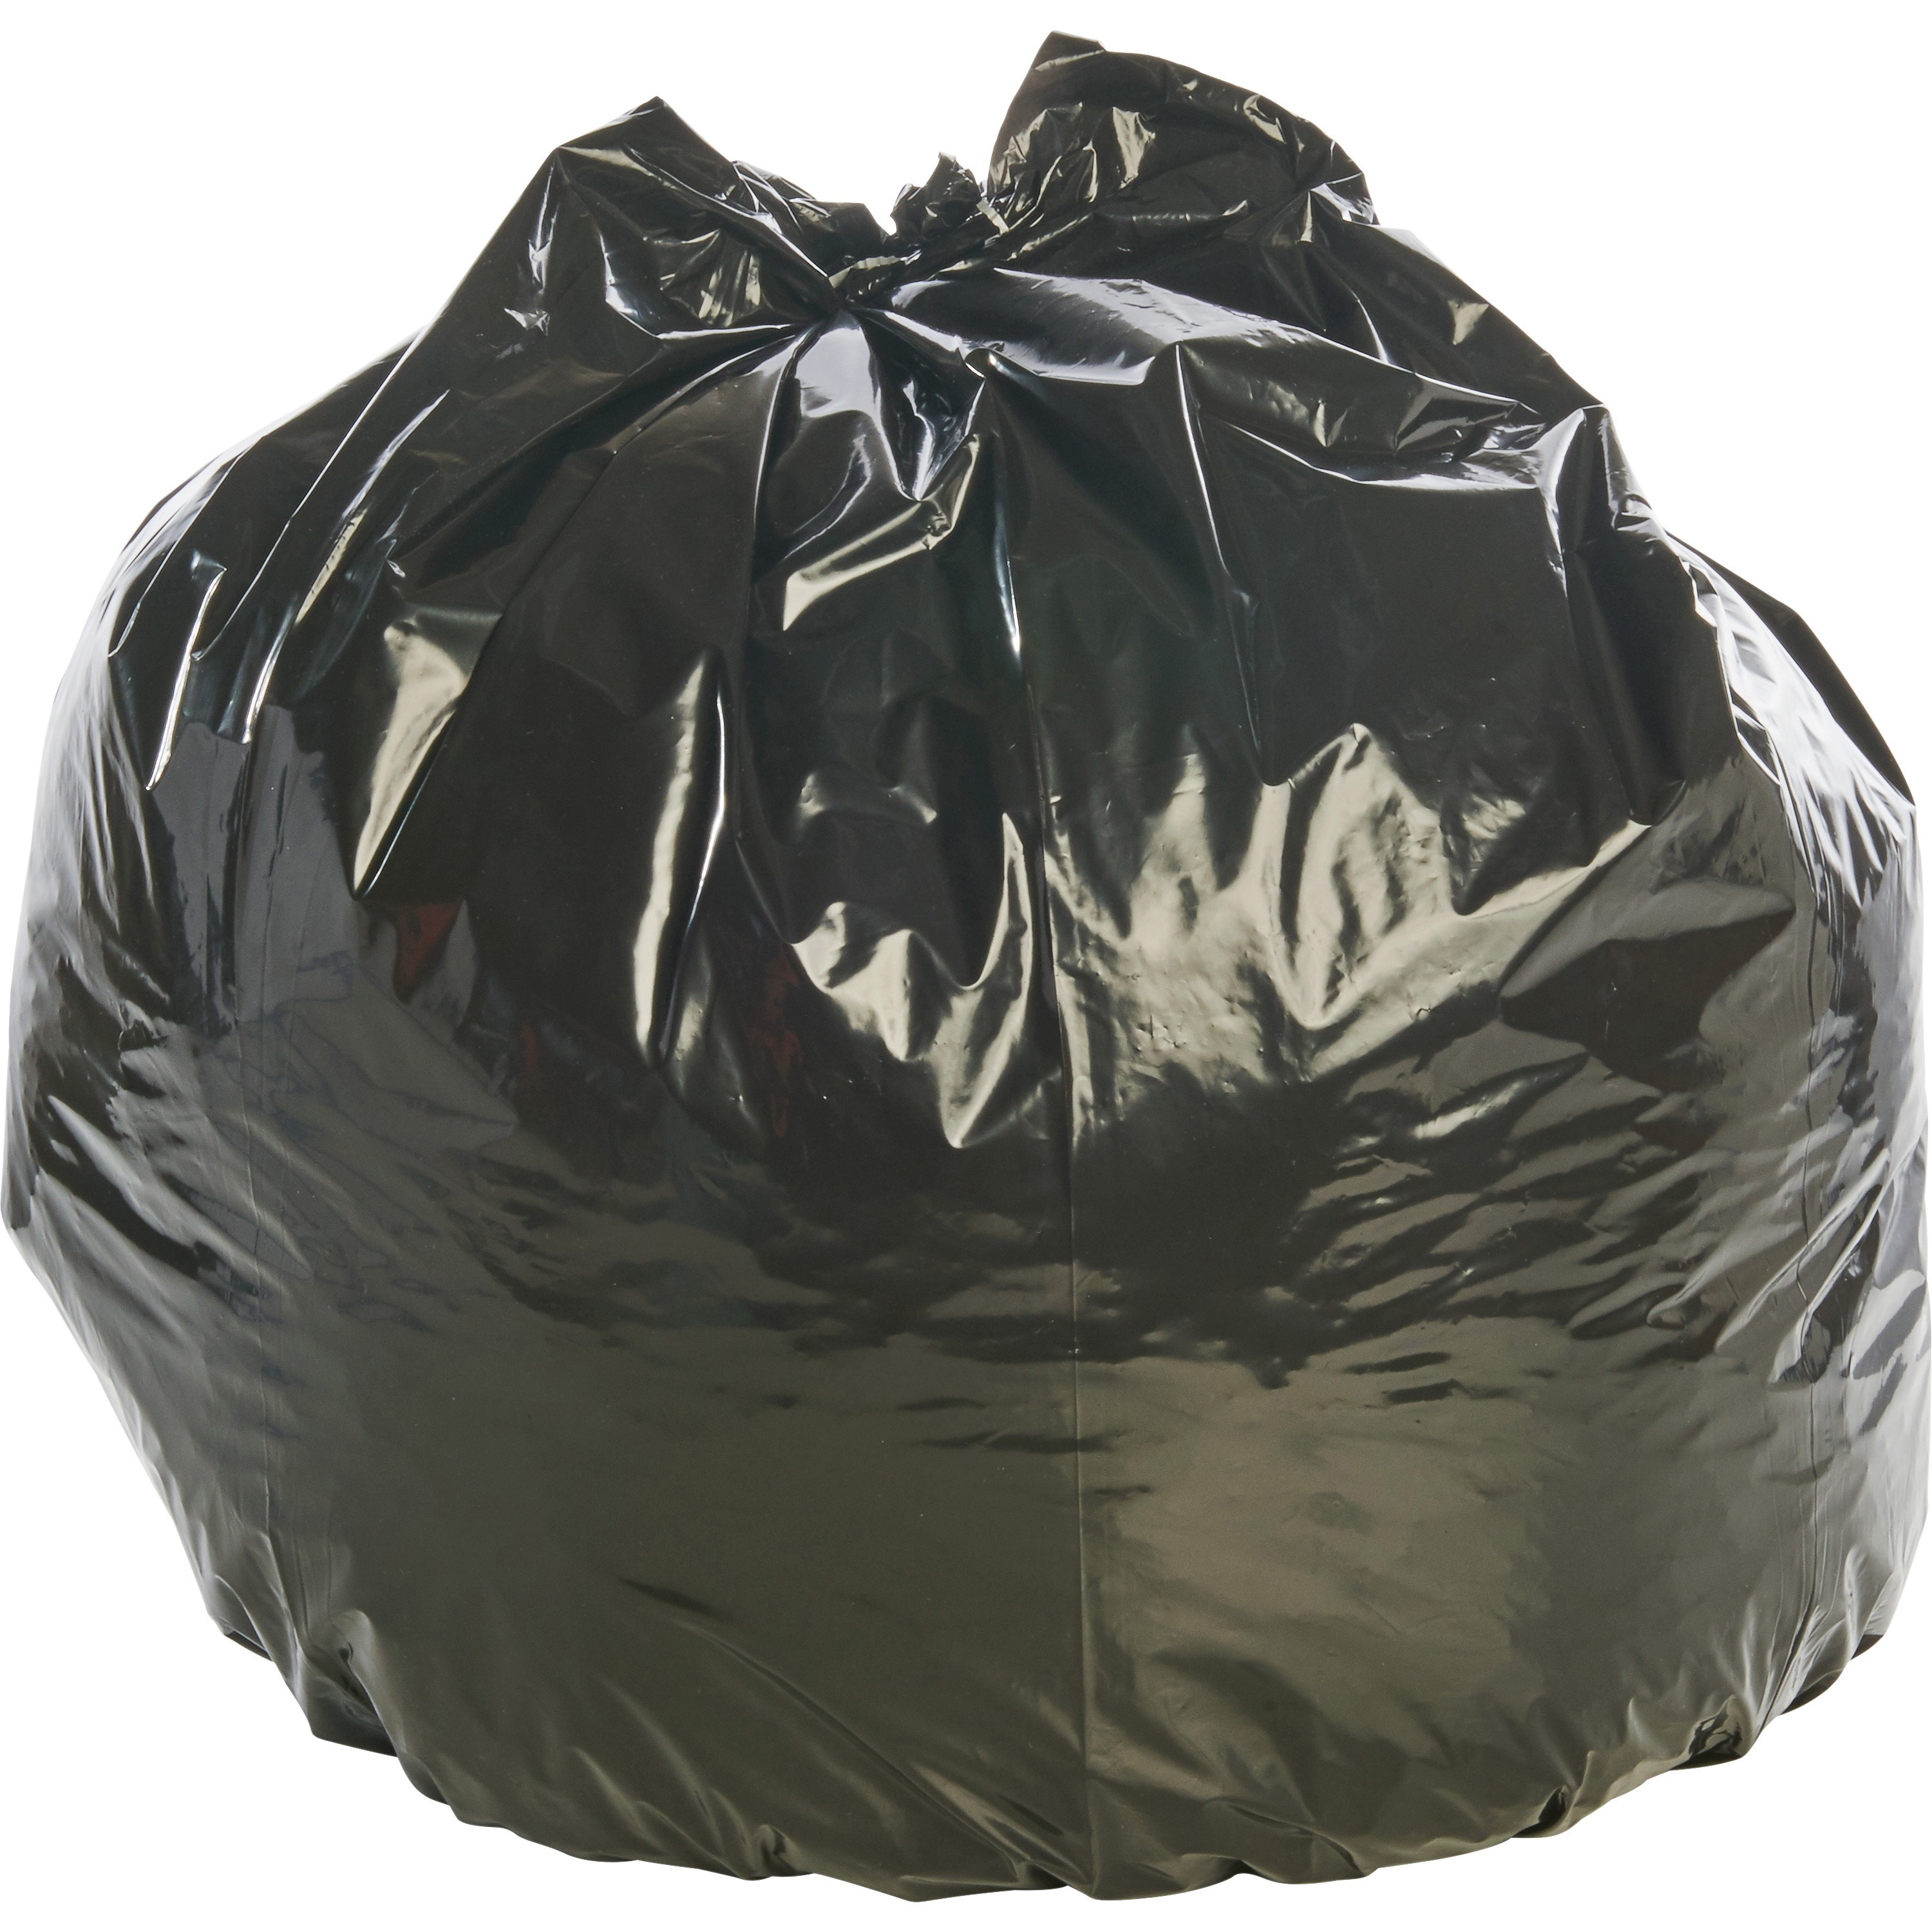 Insect-Repellent Trash Garbage Bags, 45gal, 2mil, 40 x 45, Black, 65/Box